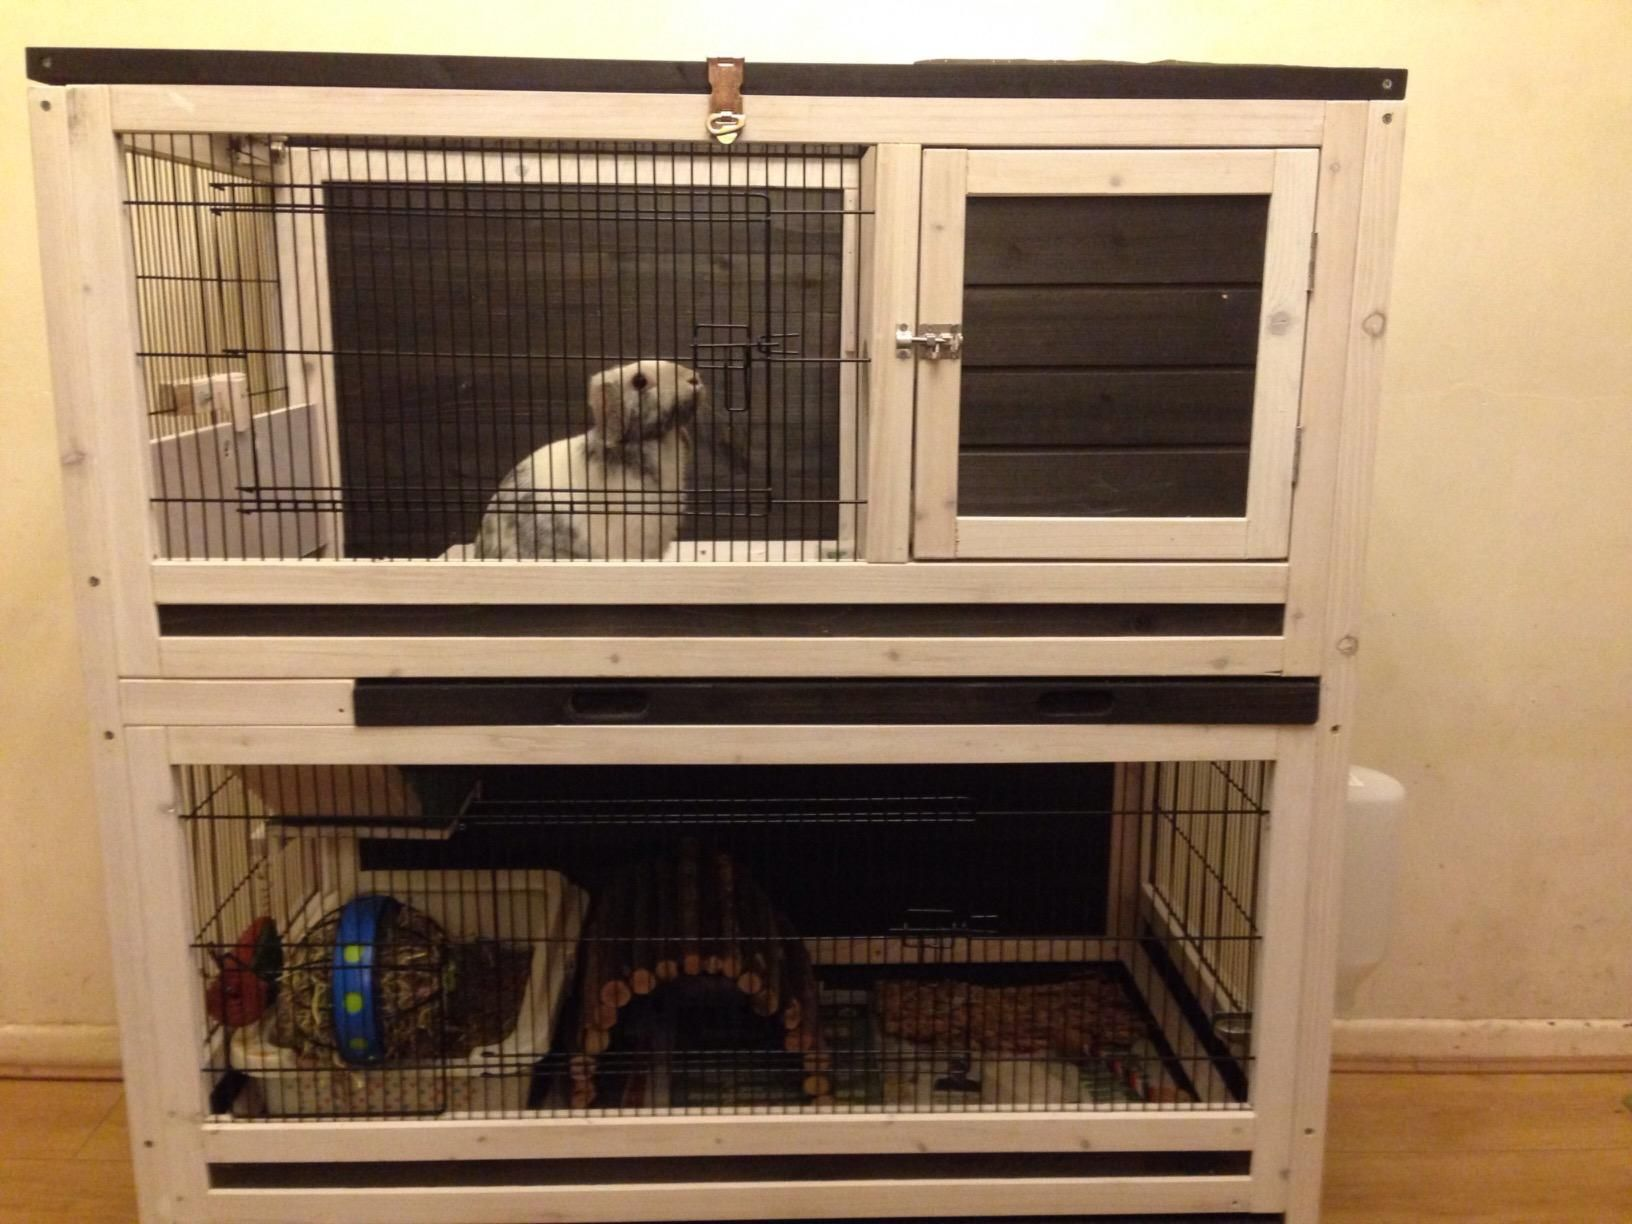 Small pet cage indoor lounge 2 storey wooden rabbits or for Wooden guinea pig cage